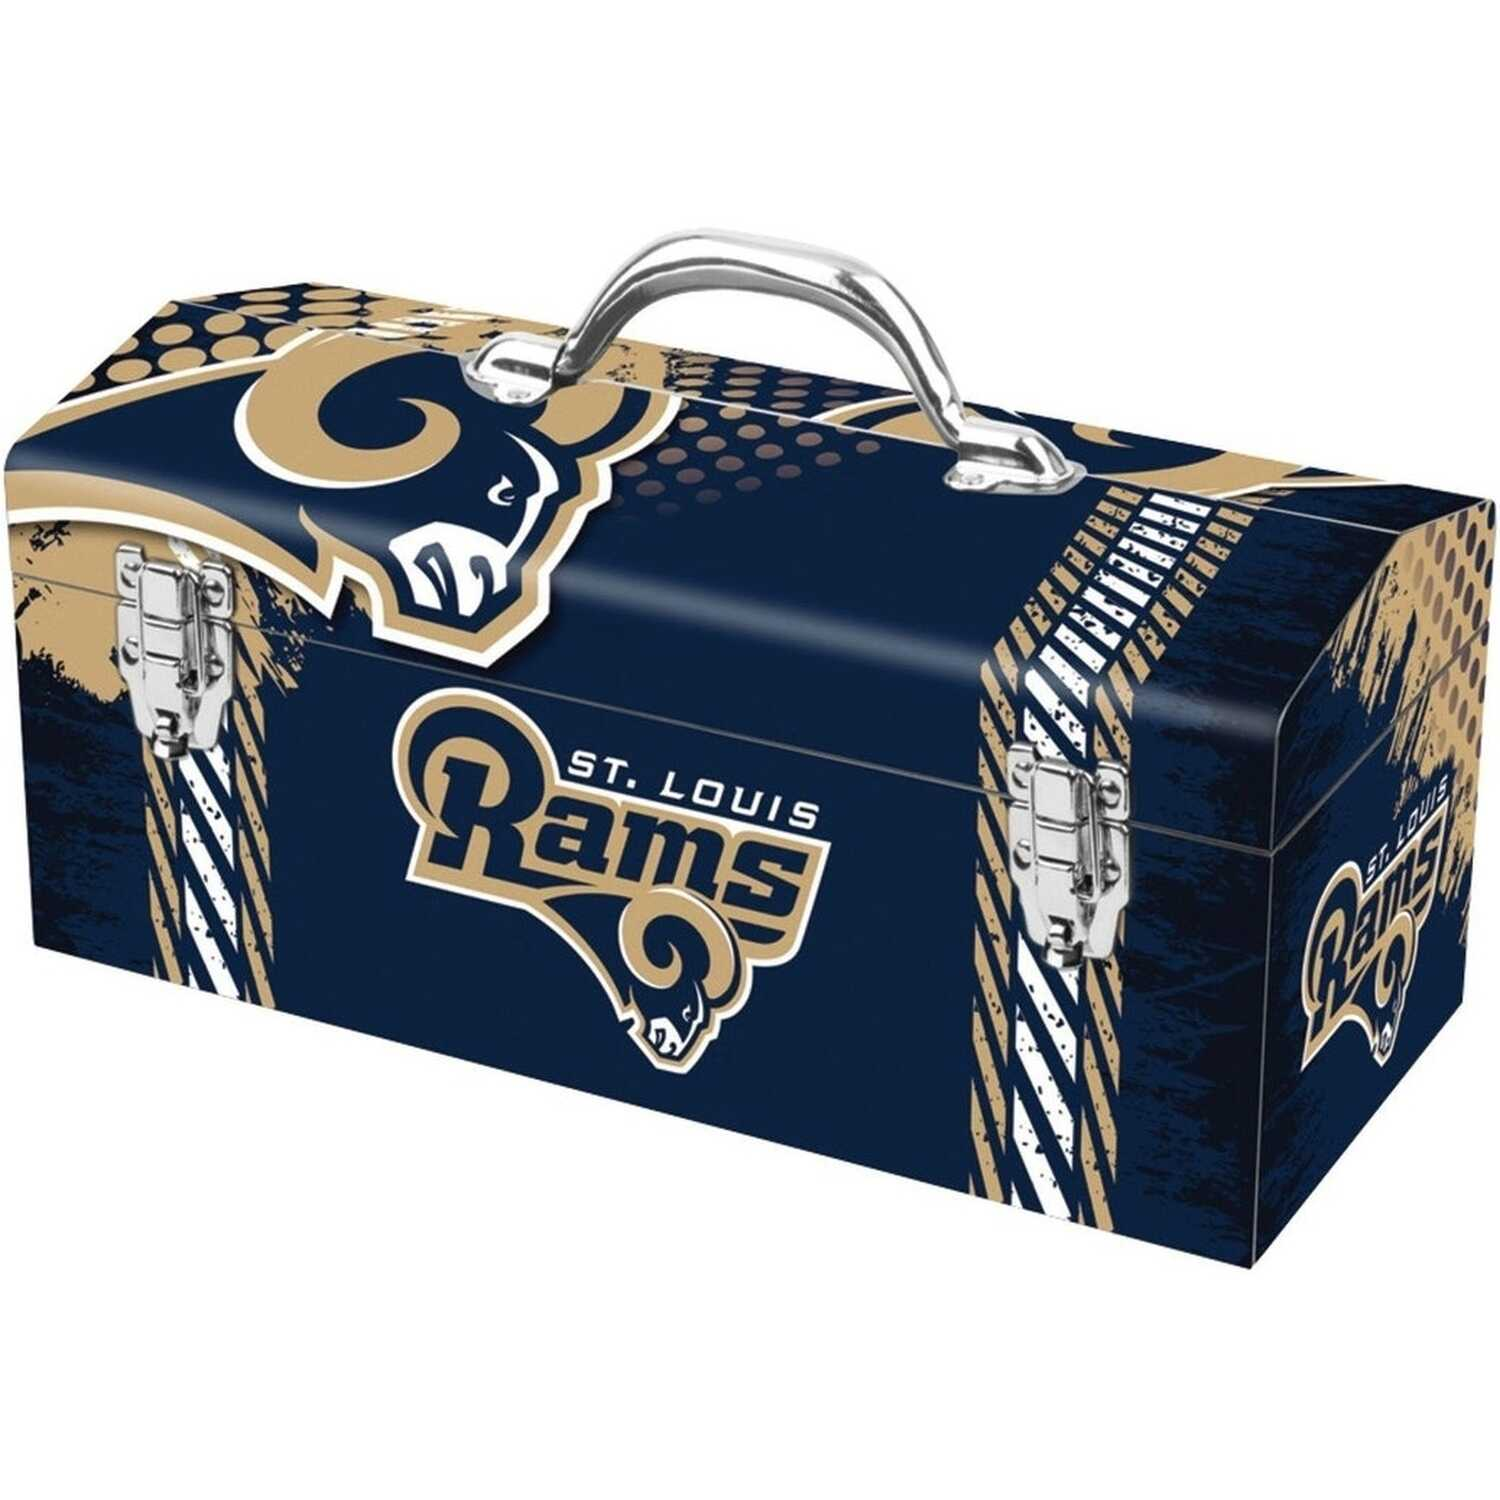 Sainty International  16.25 in. Steel  Los Angeles Rams  Art Deco Tool Box  7.1 in. W x 7.75 in. H